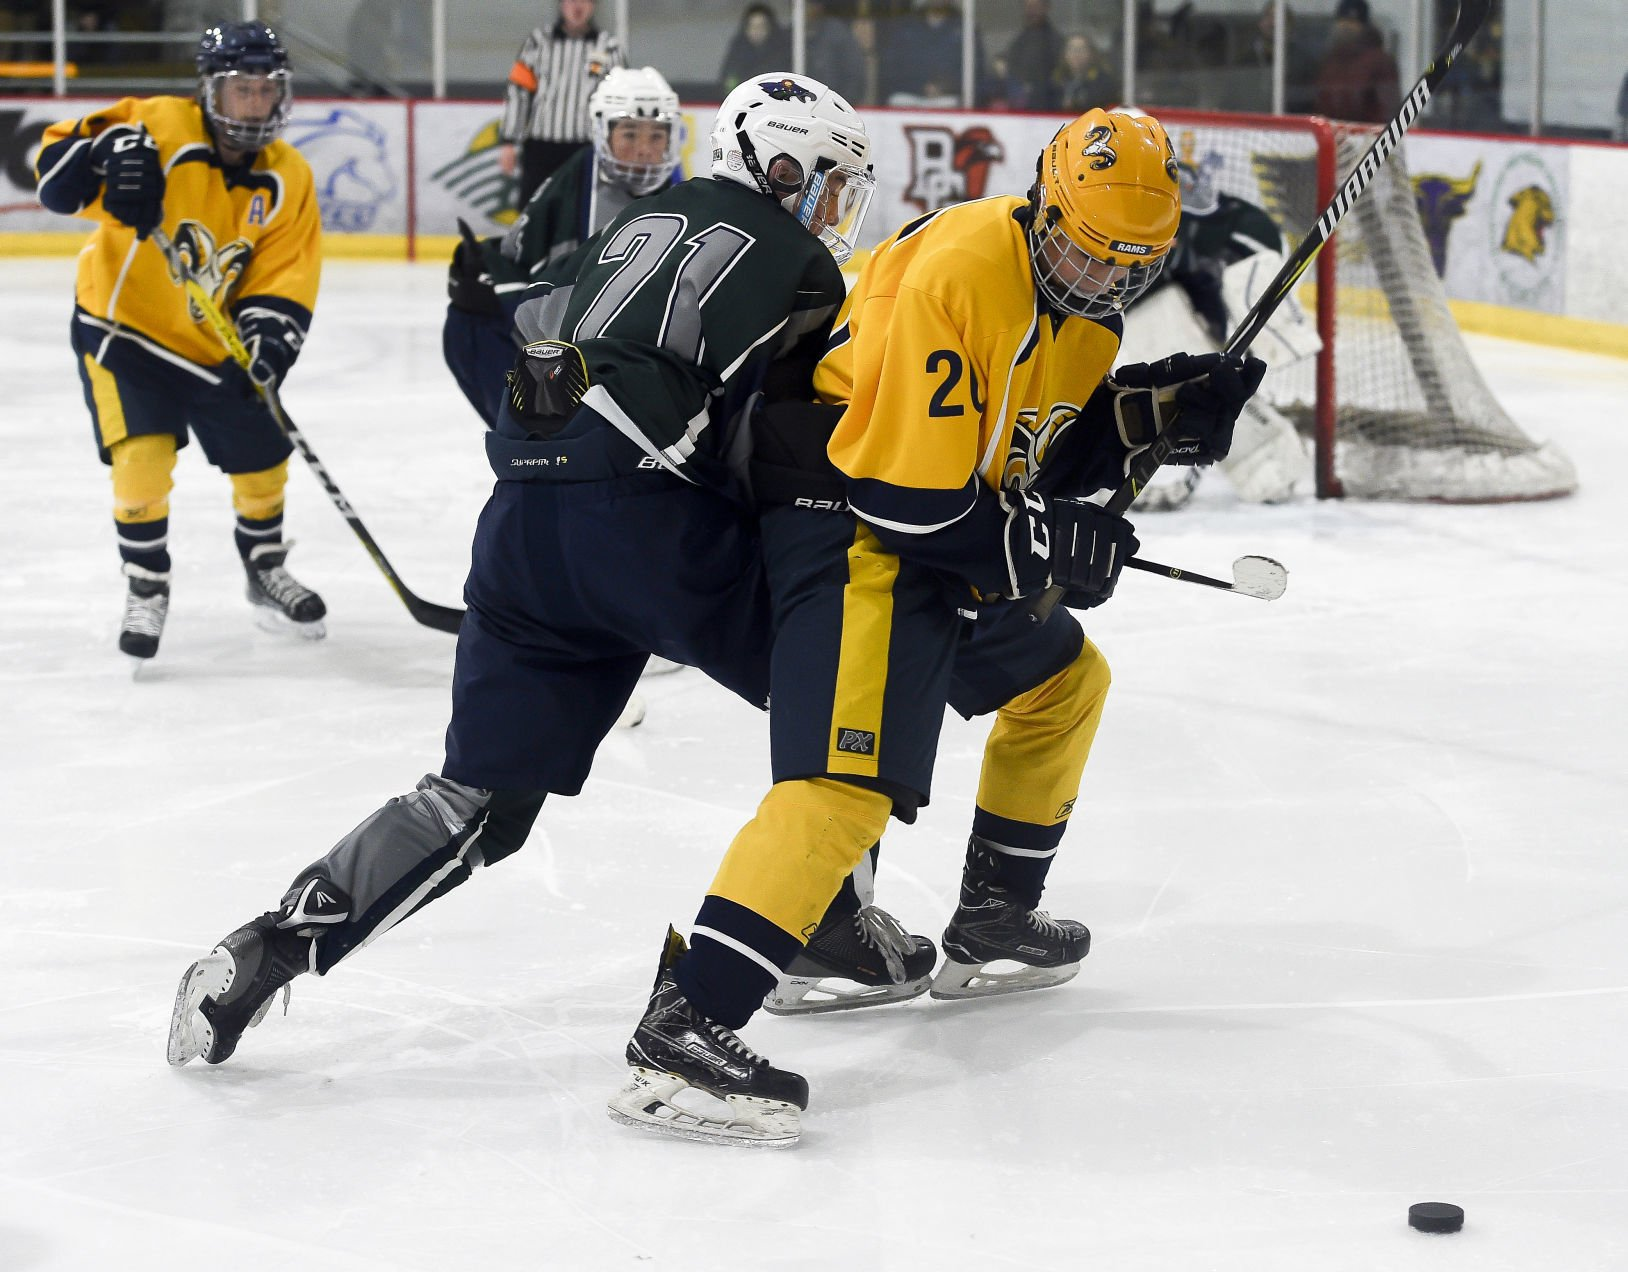 CO H.S.: From The Sidelines - Pine Creek High School Hockey Team On A Roll